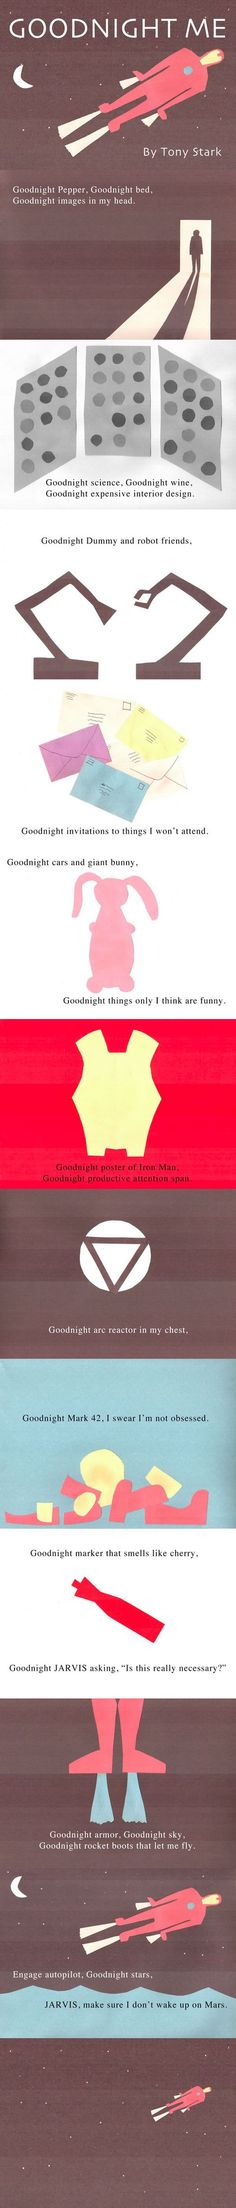 Goodnight Iron Man<<< I would so read this to my kids. Favourite kids book and one of my favourite avengers. Love it!!!